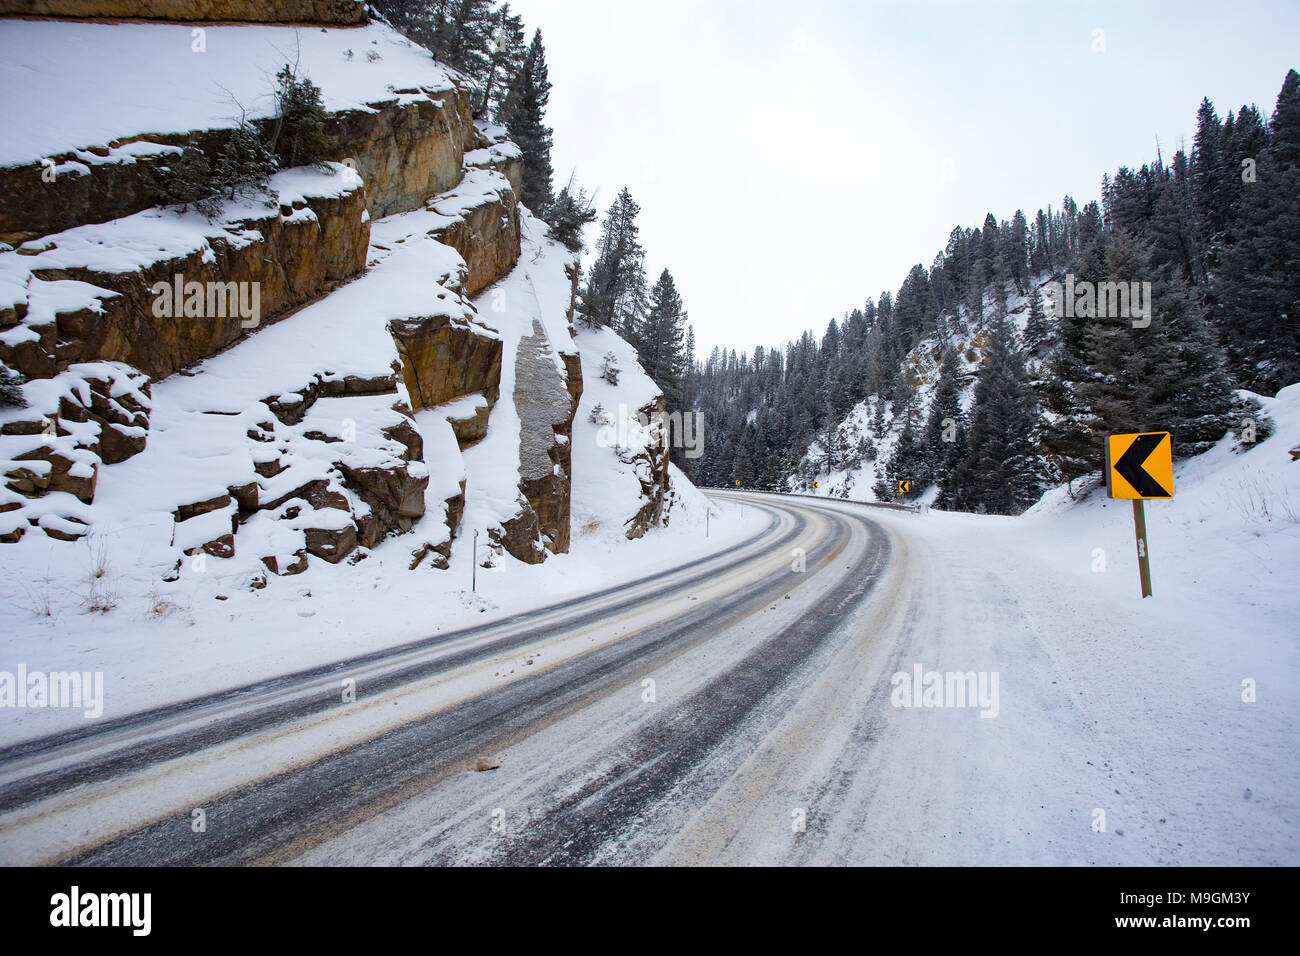 A sharp bend in the road with icy road conditions, at Georgetown Pass, on Montana Highway 1, southeast of Philipsburg, MT. - Stock Image